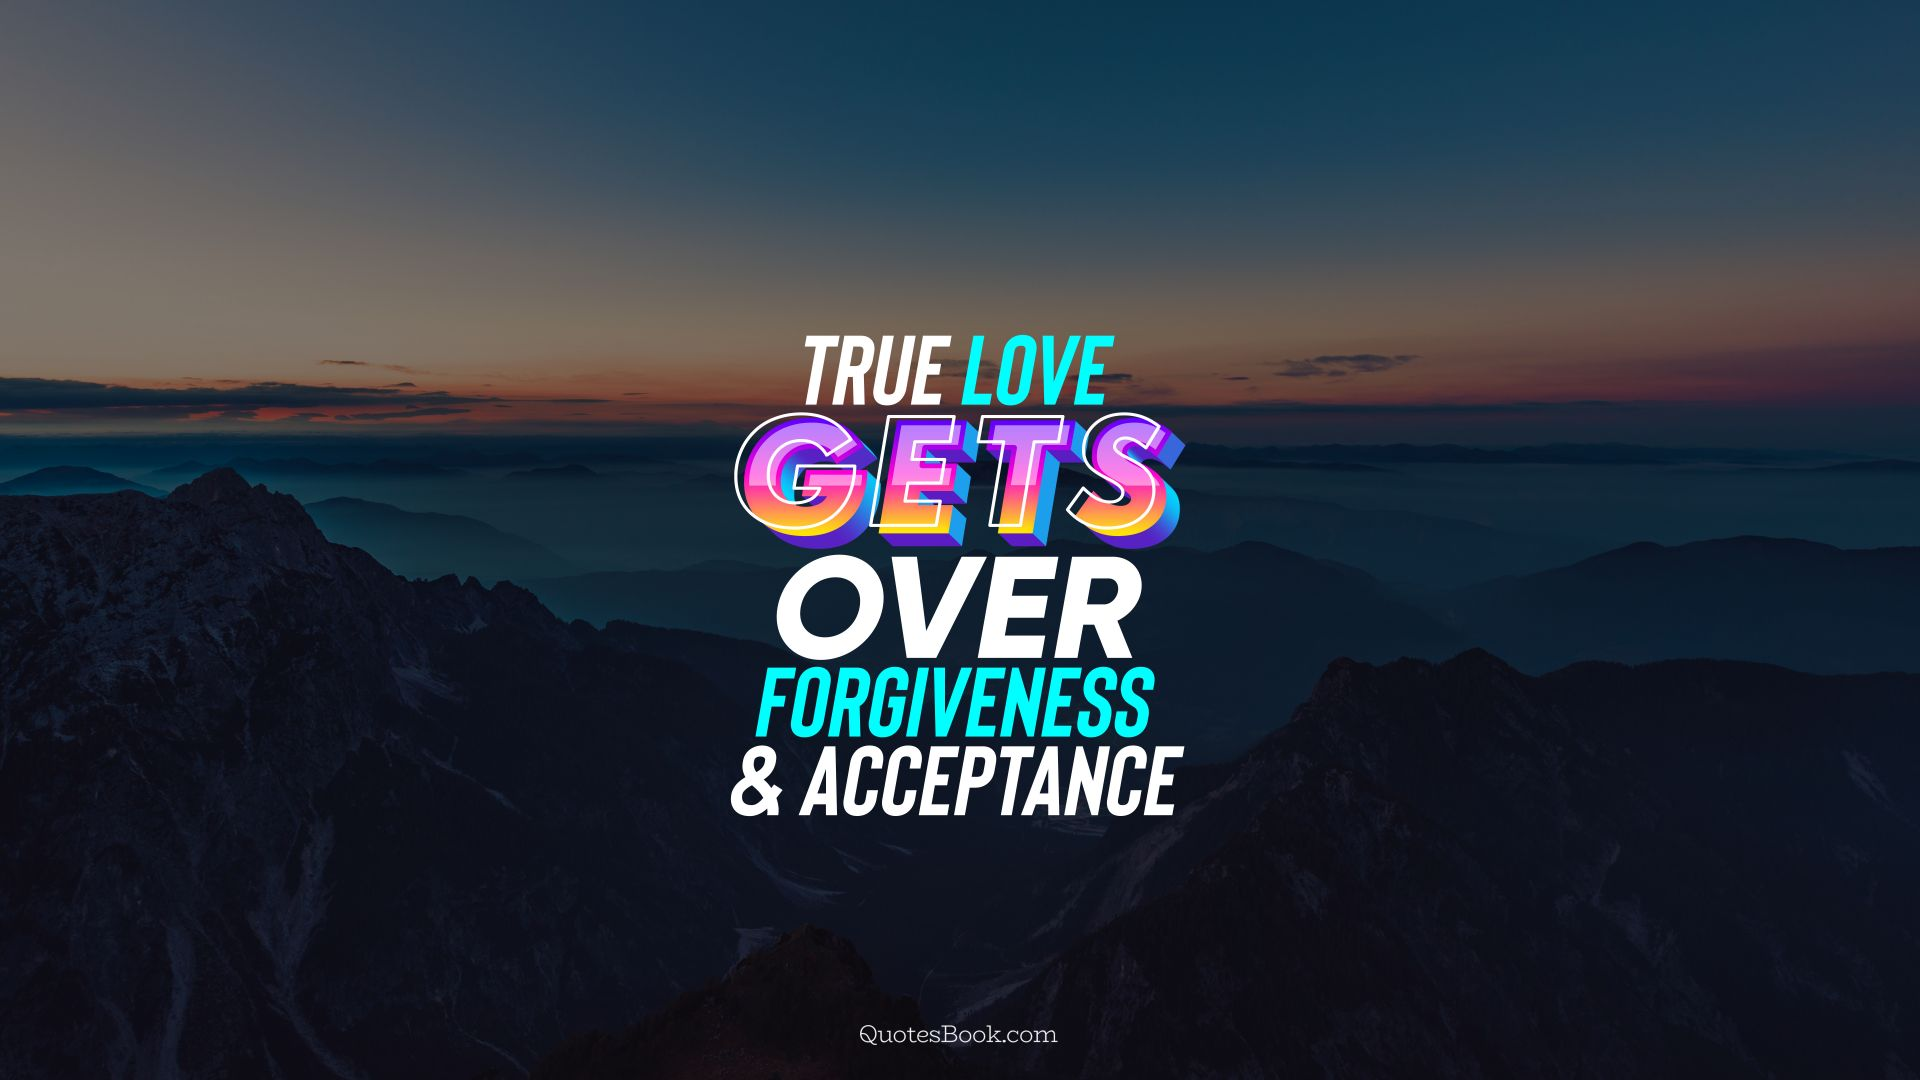 True love gets over forgiveness and acceptance. - Quote by QuotesBook